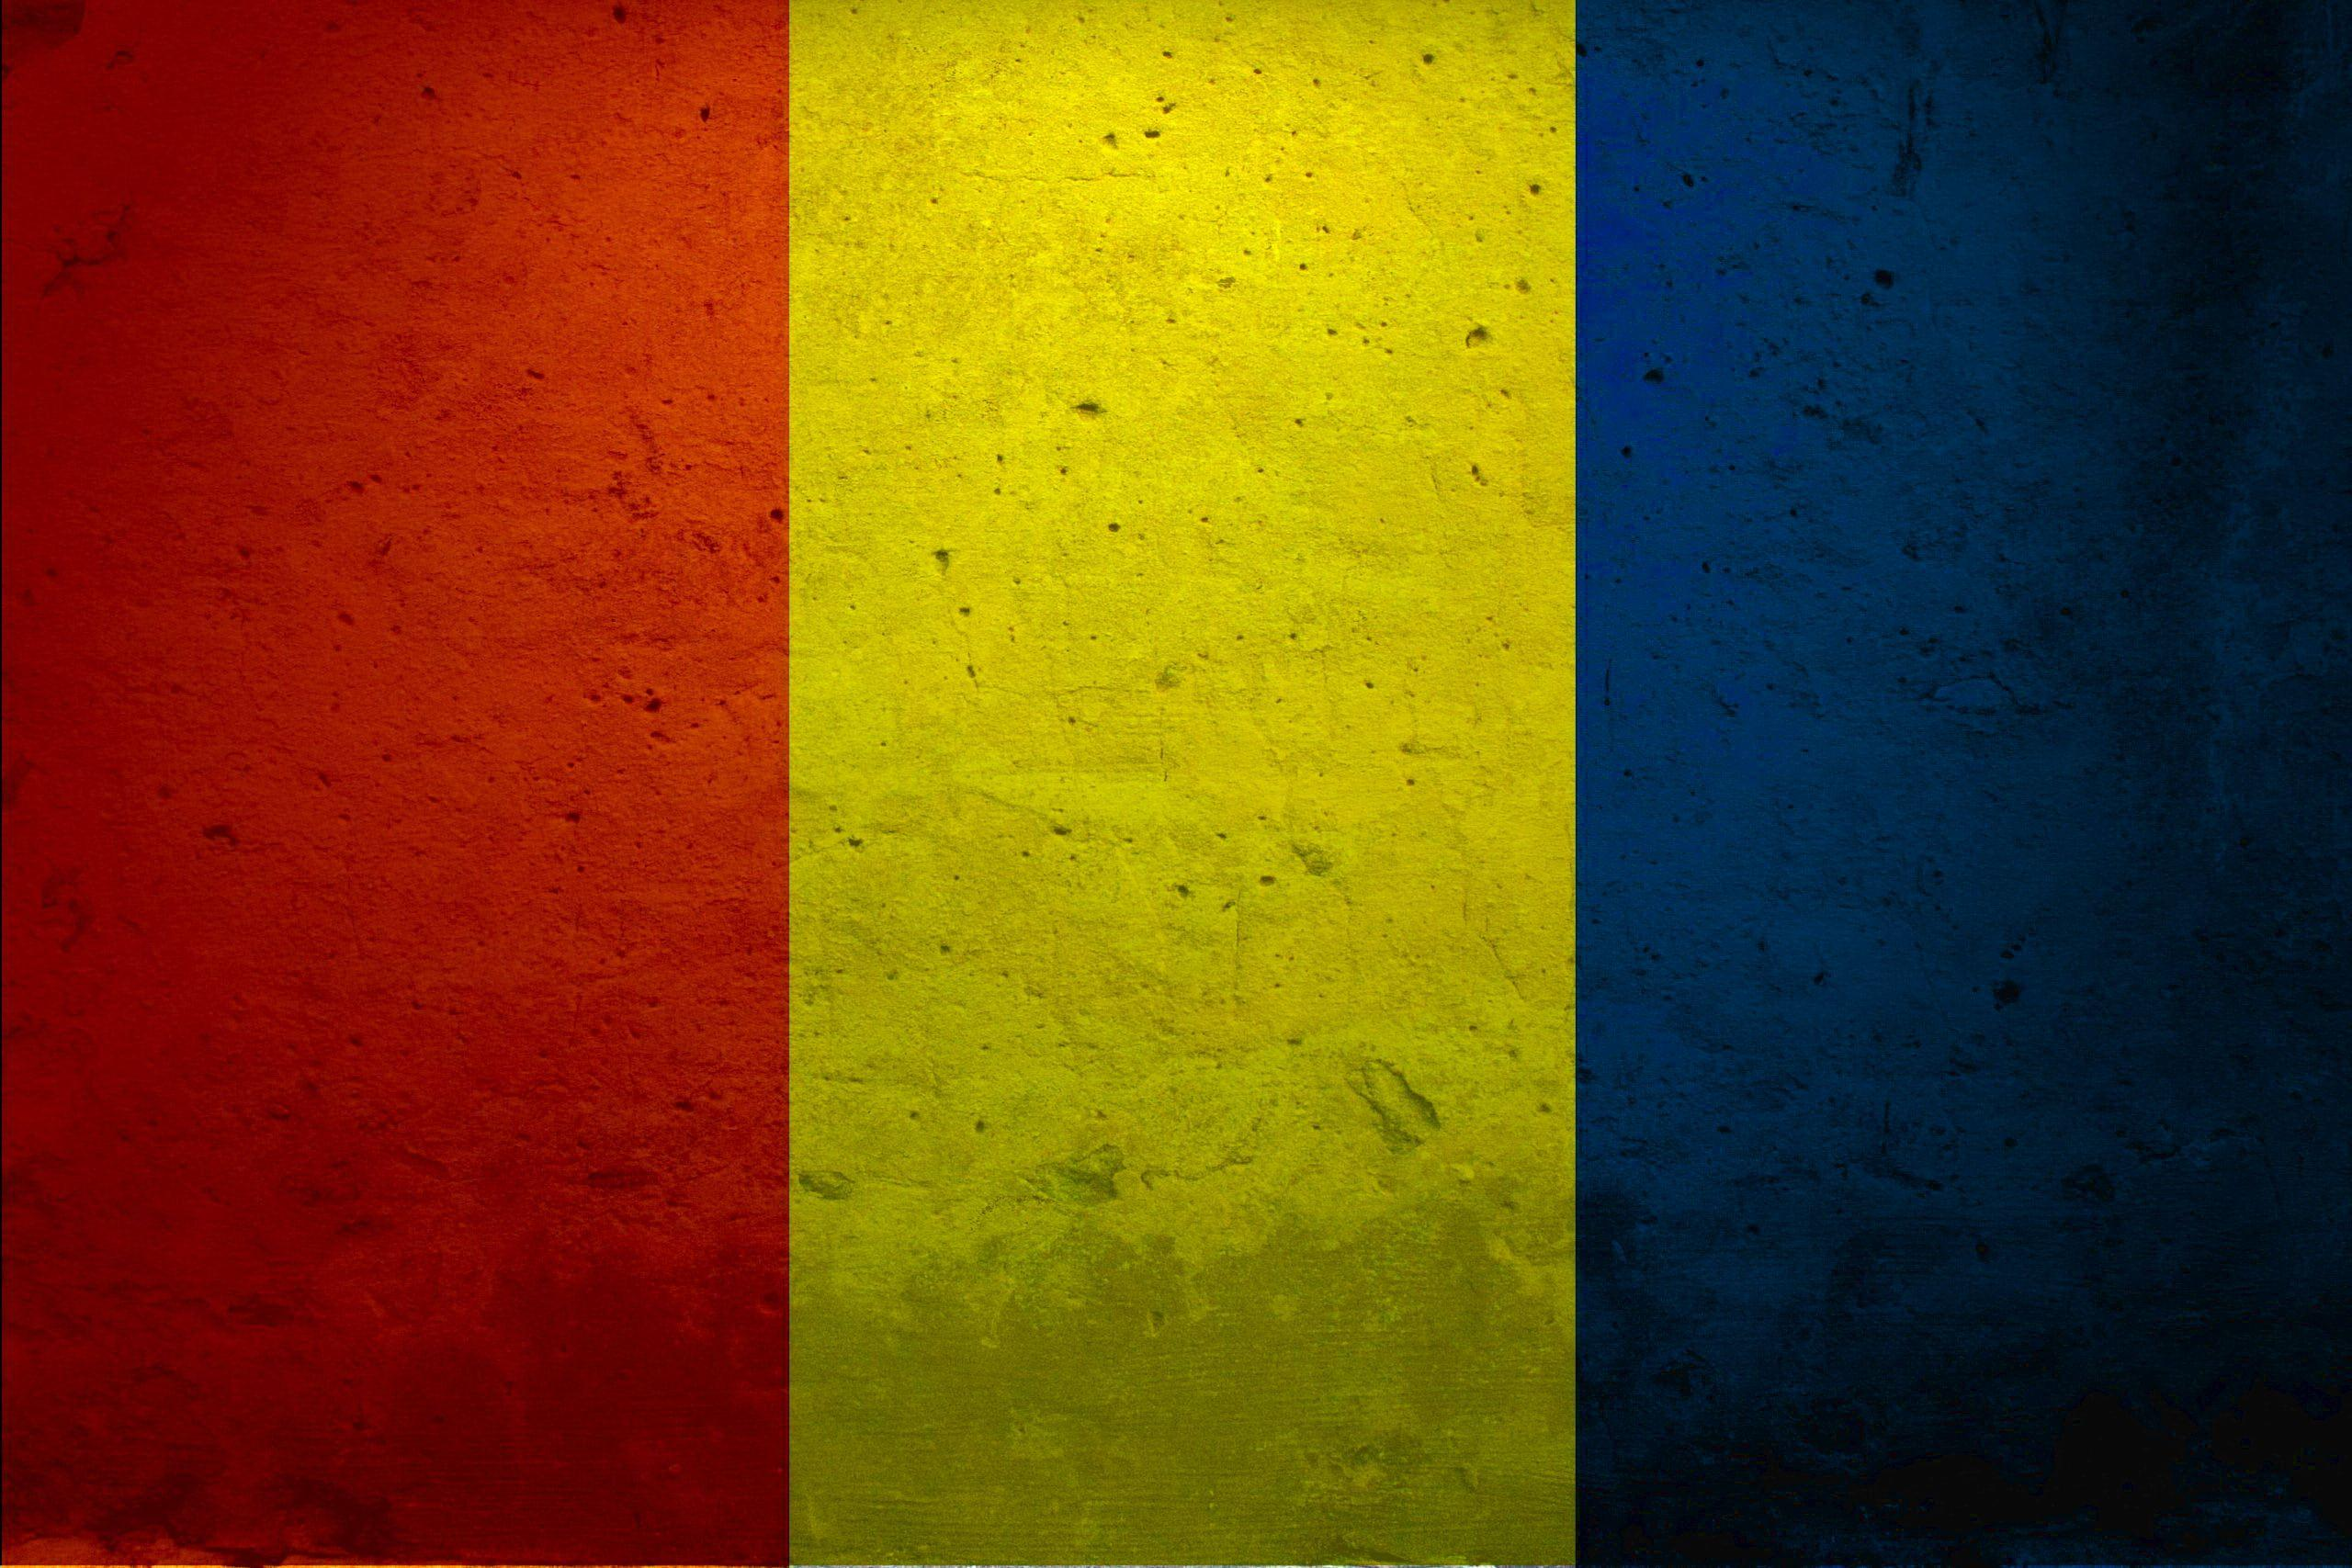 Romania Flag Wallpapers